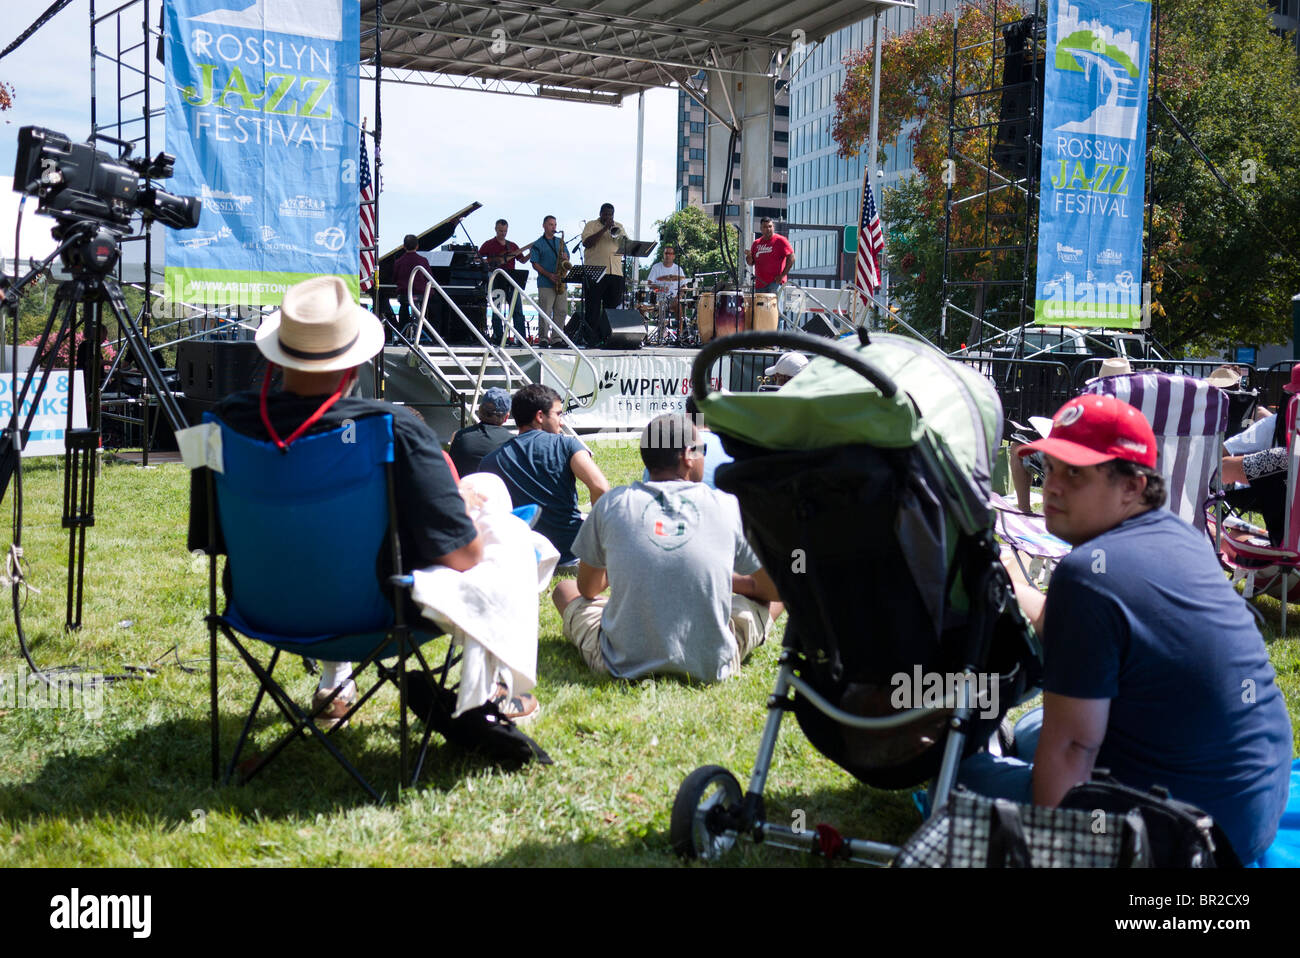 The 20th annual Rosslyn Jazz Festival (2010) in Rosslyn, a neighborhood of Arlington County very close to Georgetown - Stock Image